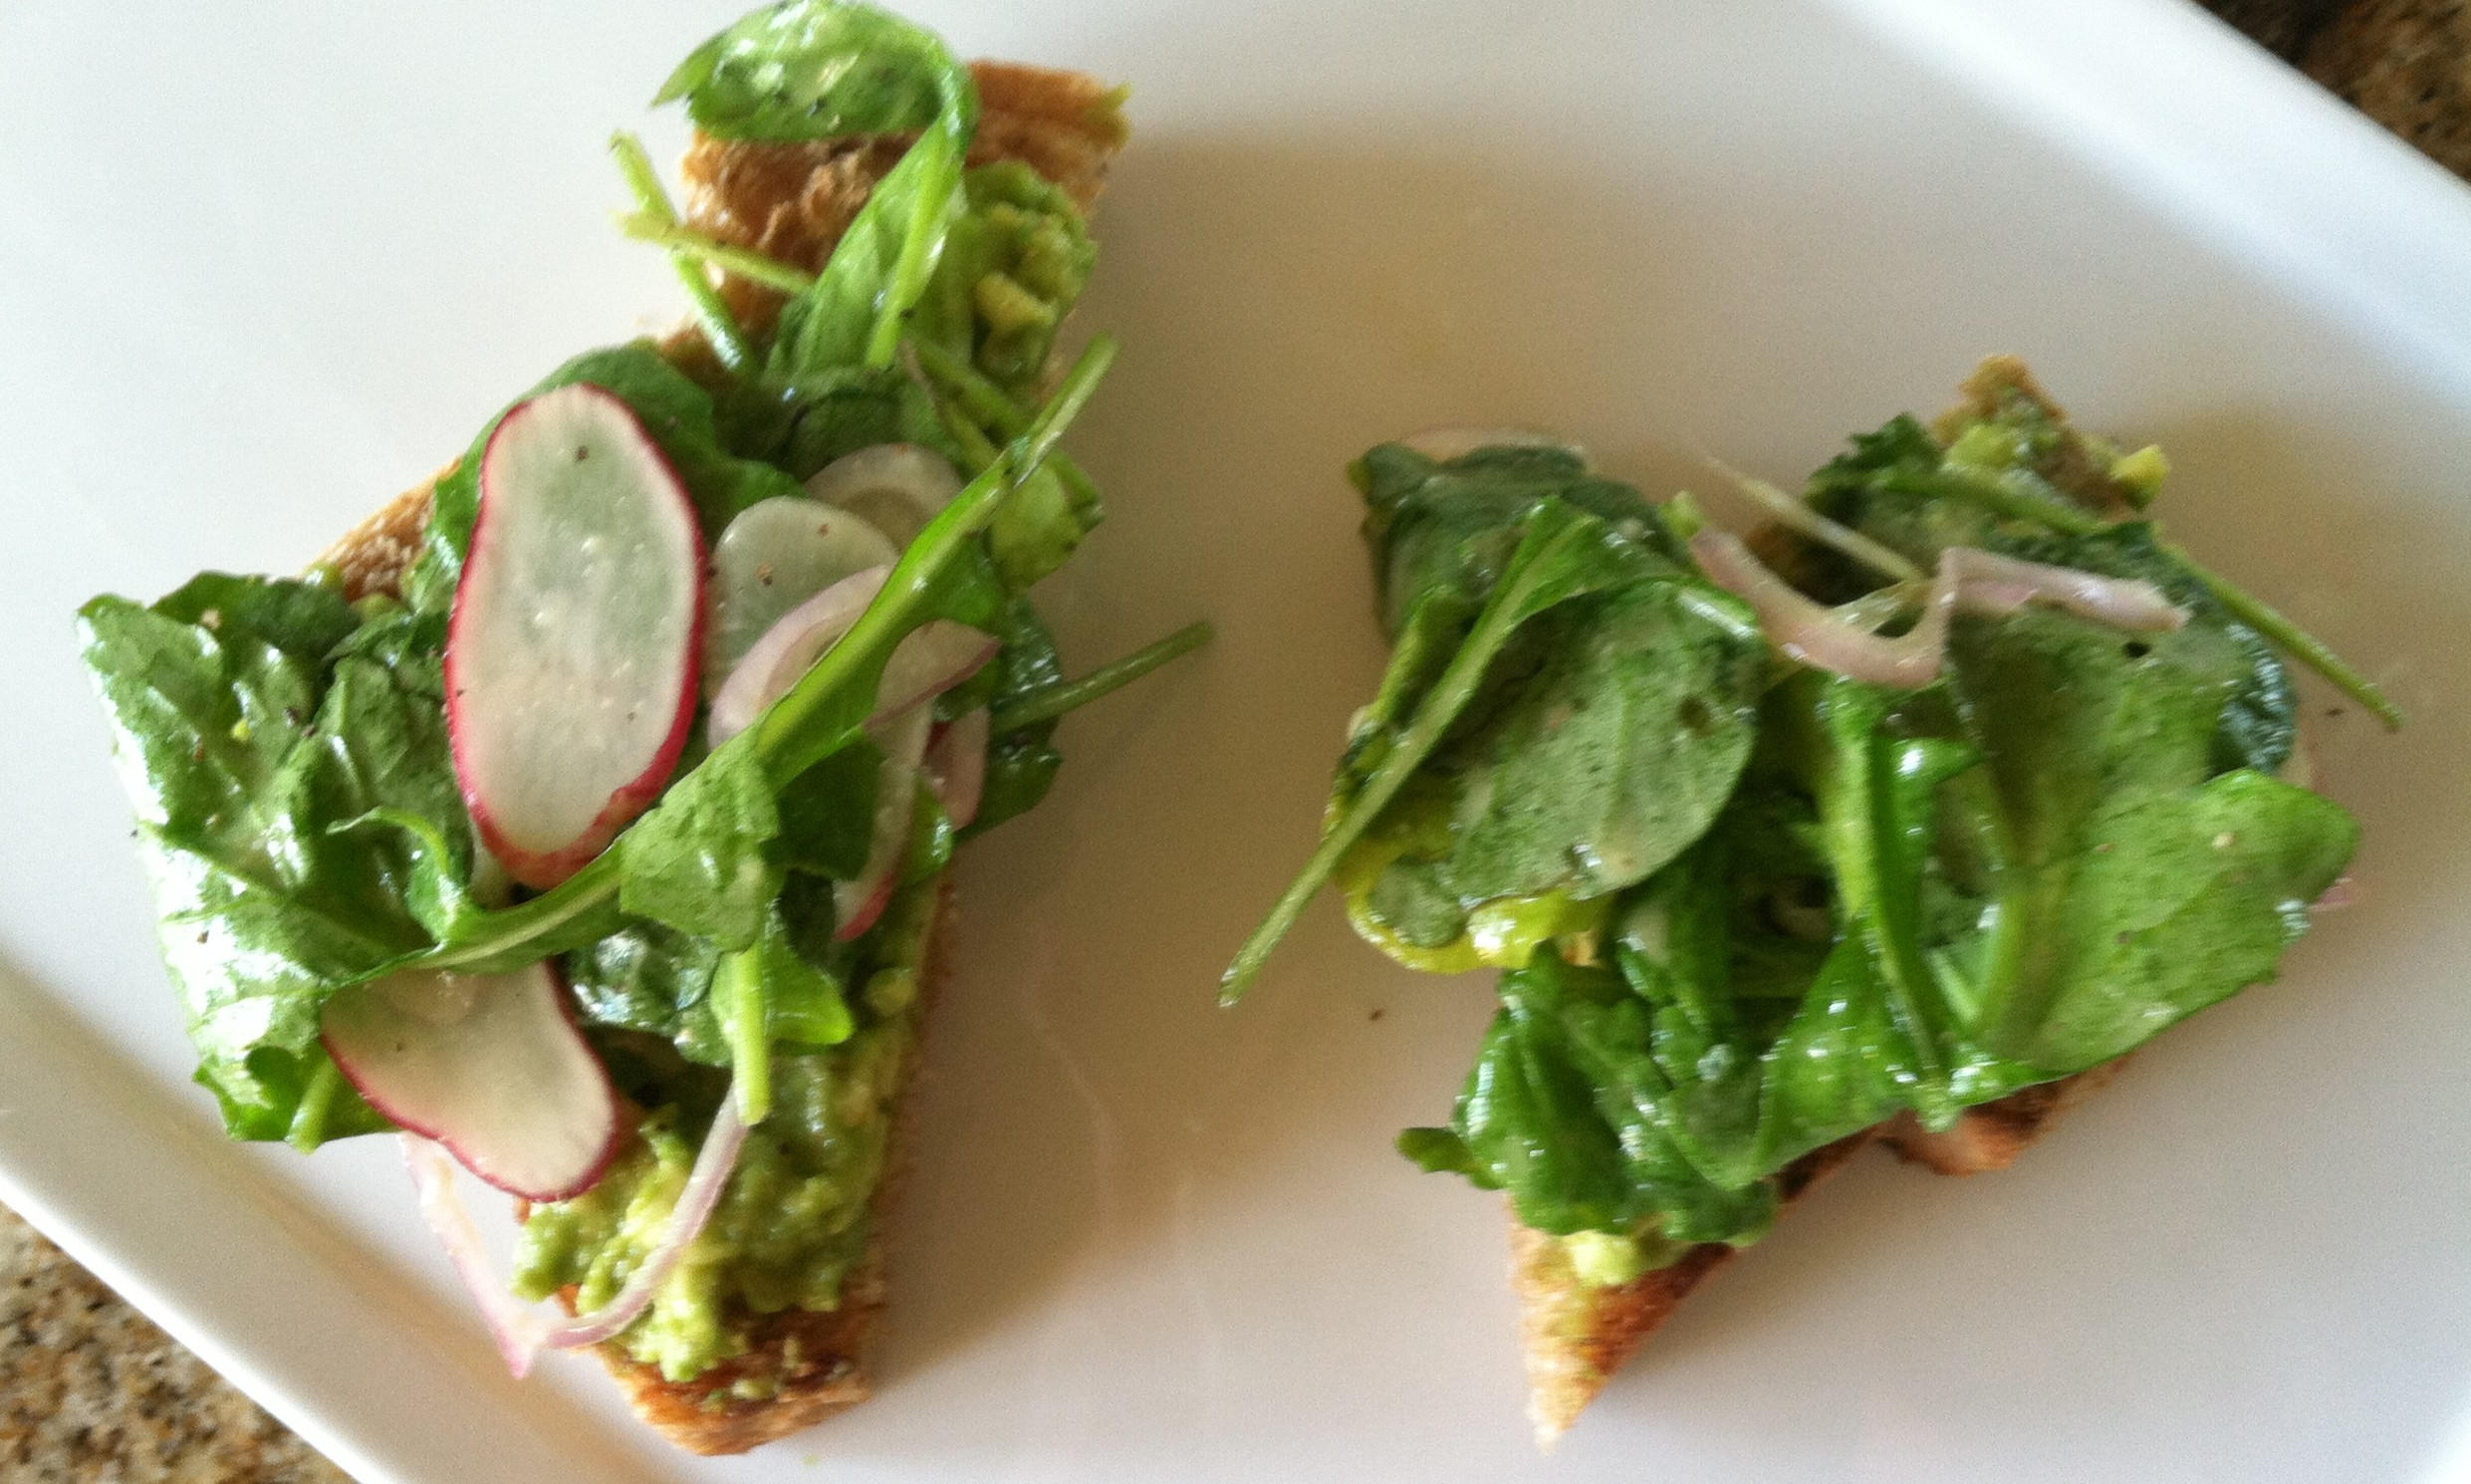 Avocado, Arugula and Radish Toasts